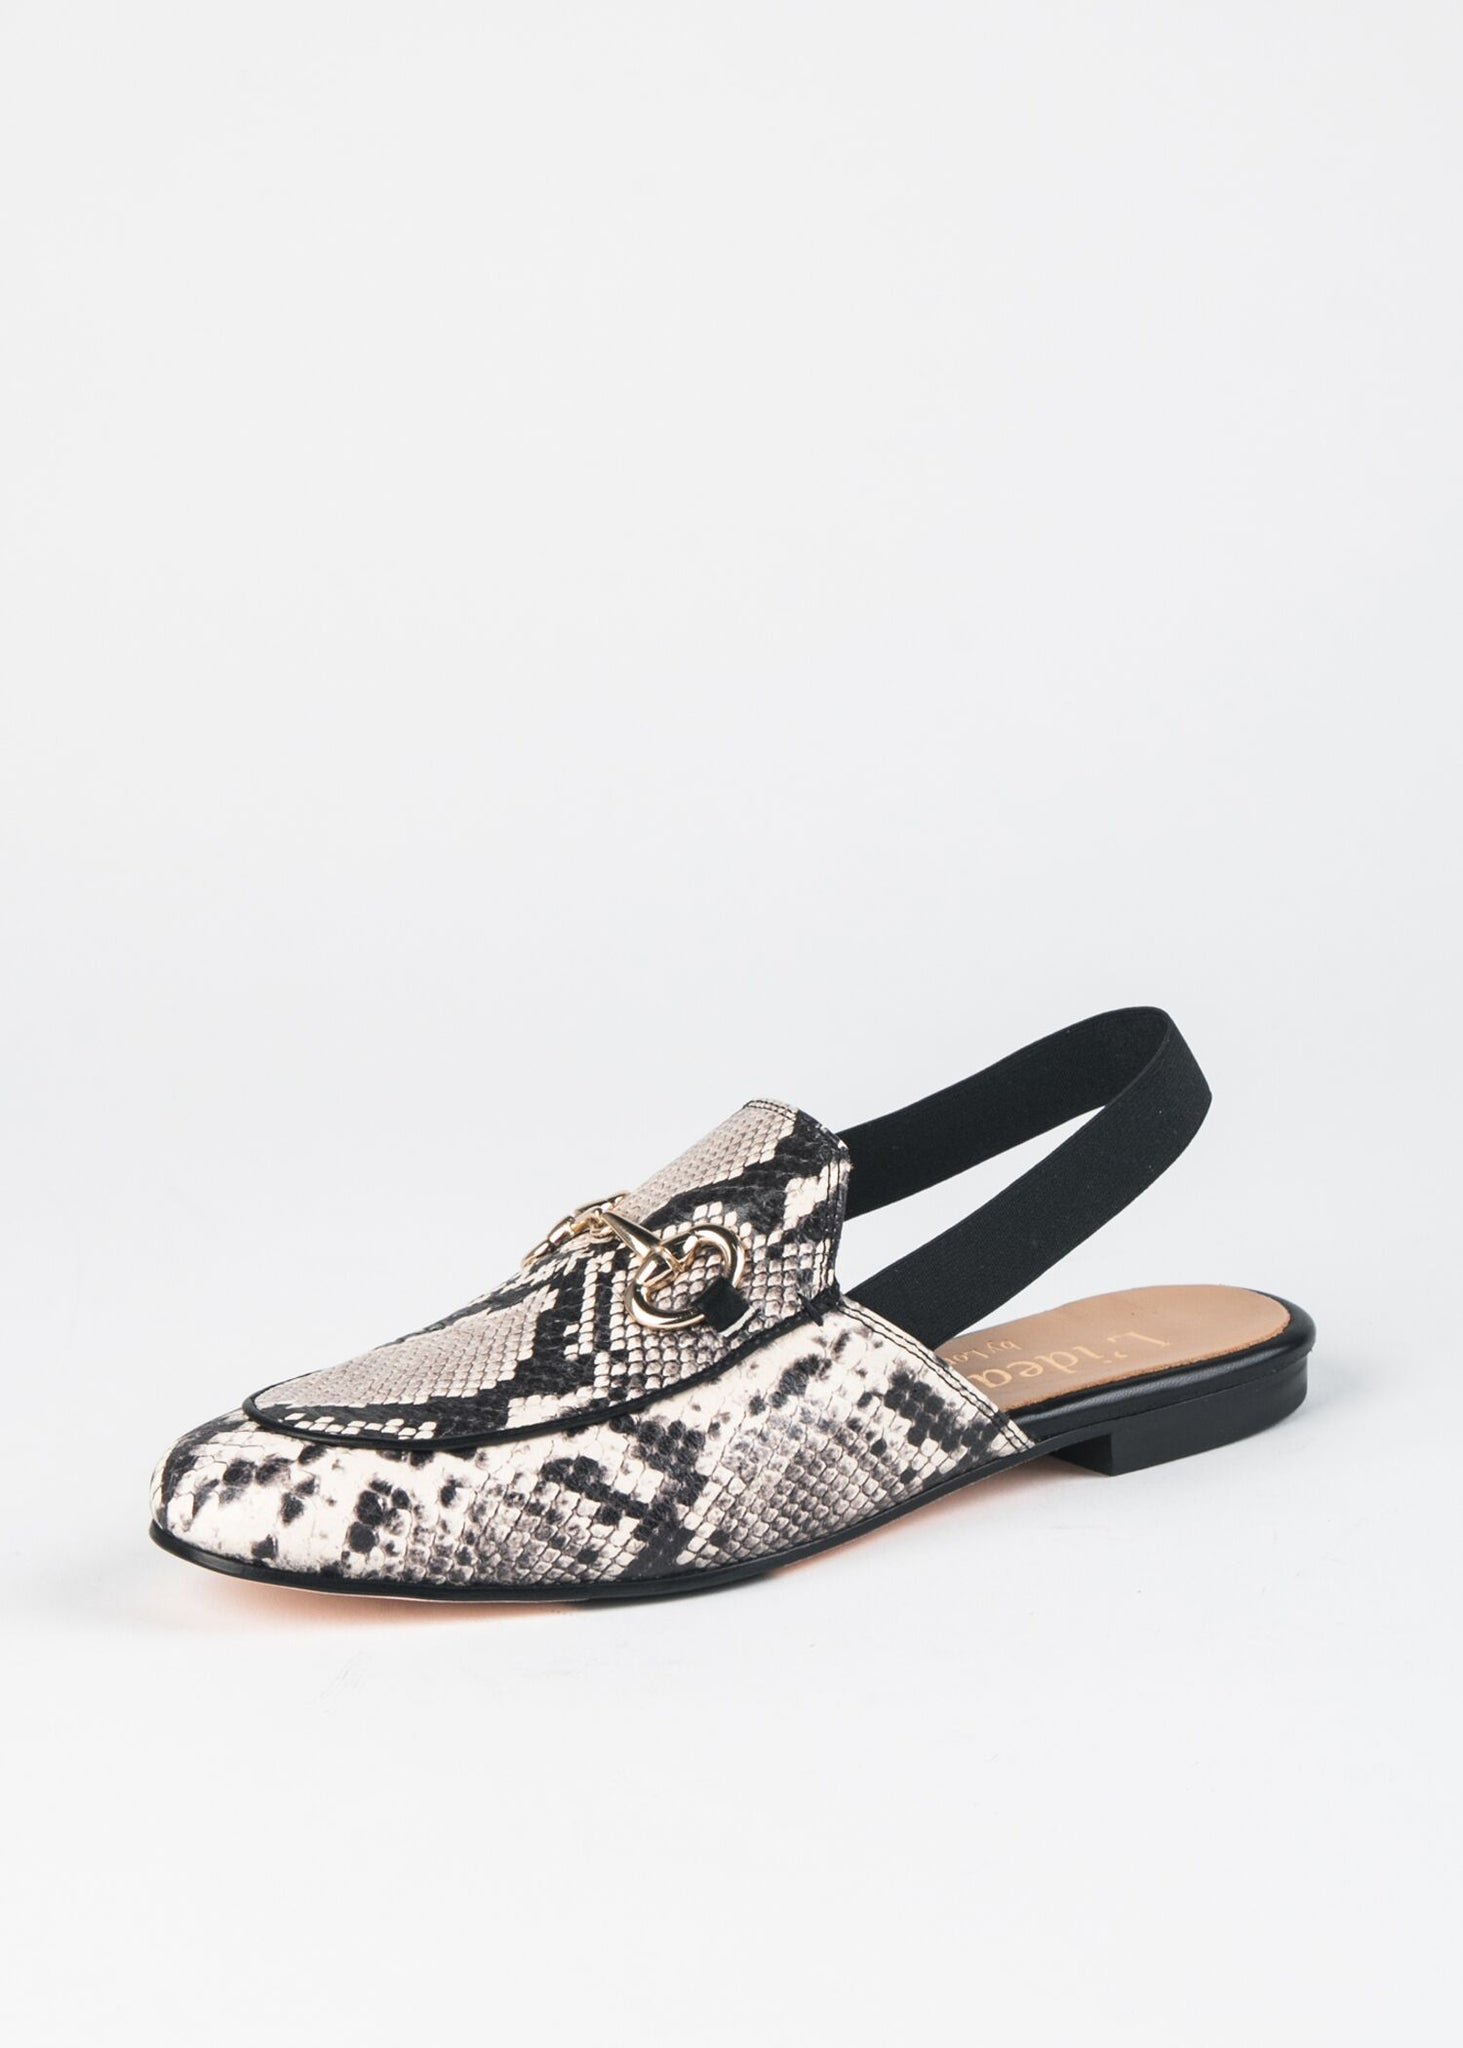 SNAKESKIN LEATHER MULE SLINGBACK WITH BIT